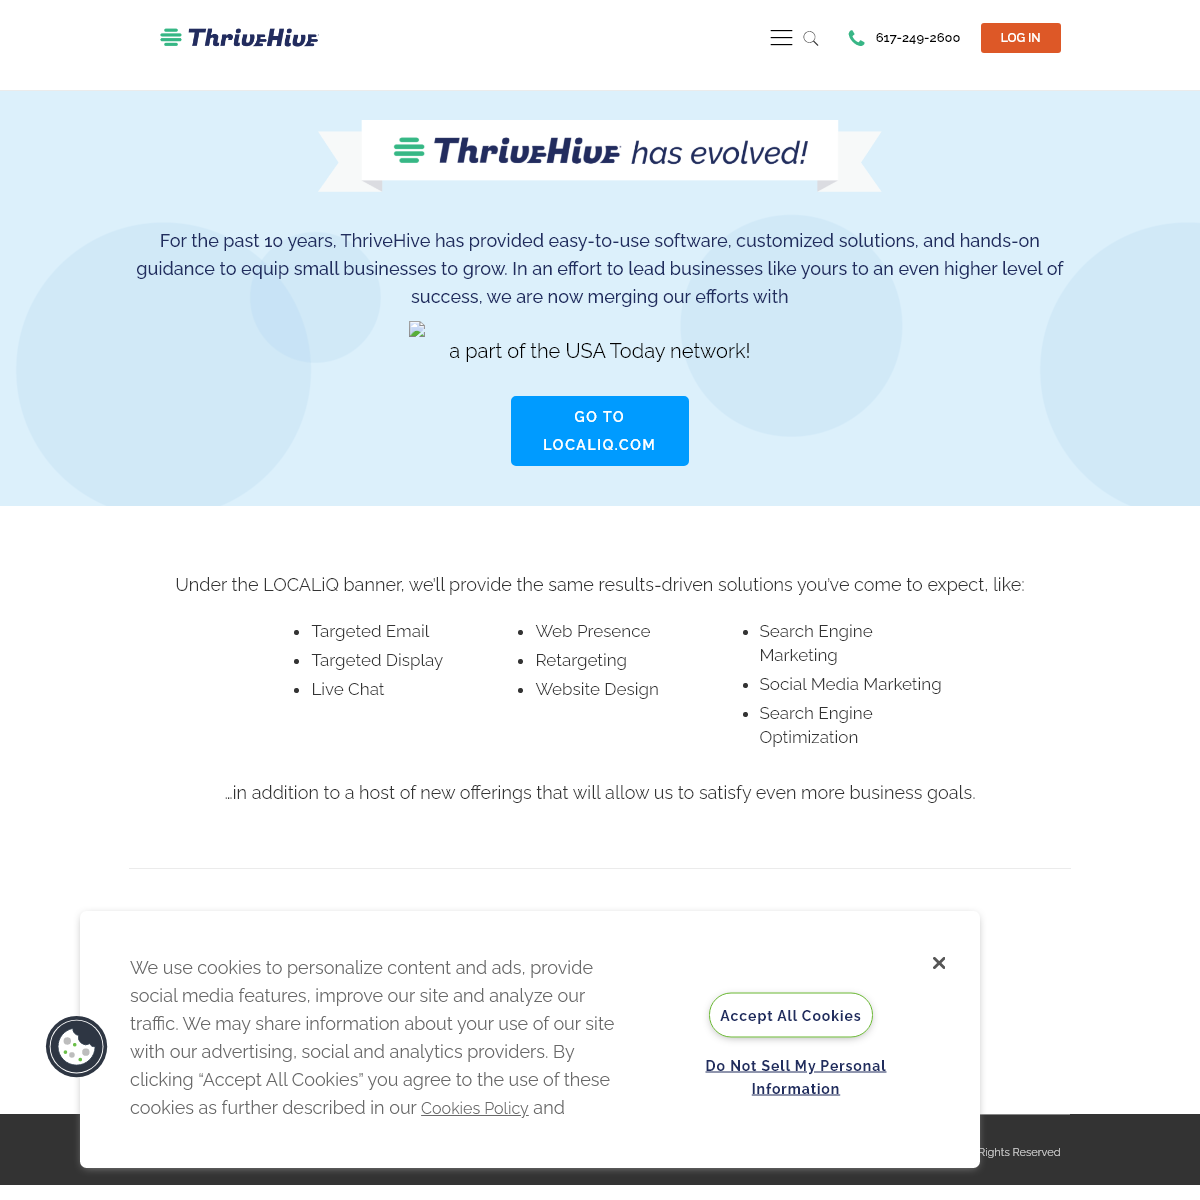 Guided Marketing Solutions for Your Small Business - ThriveHive